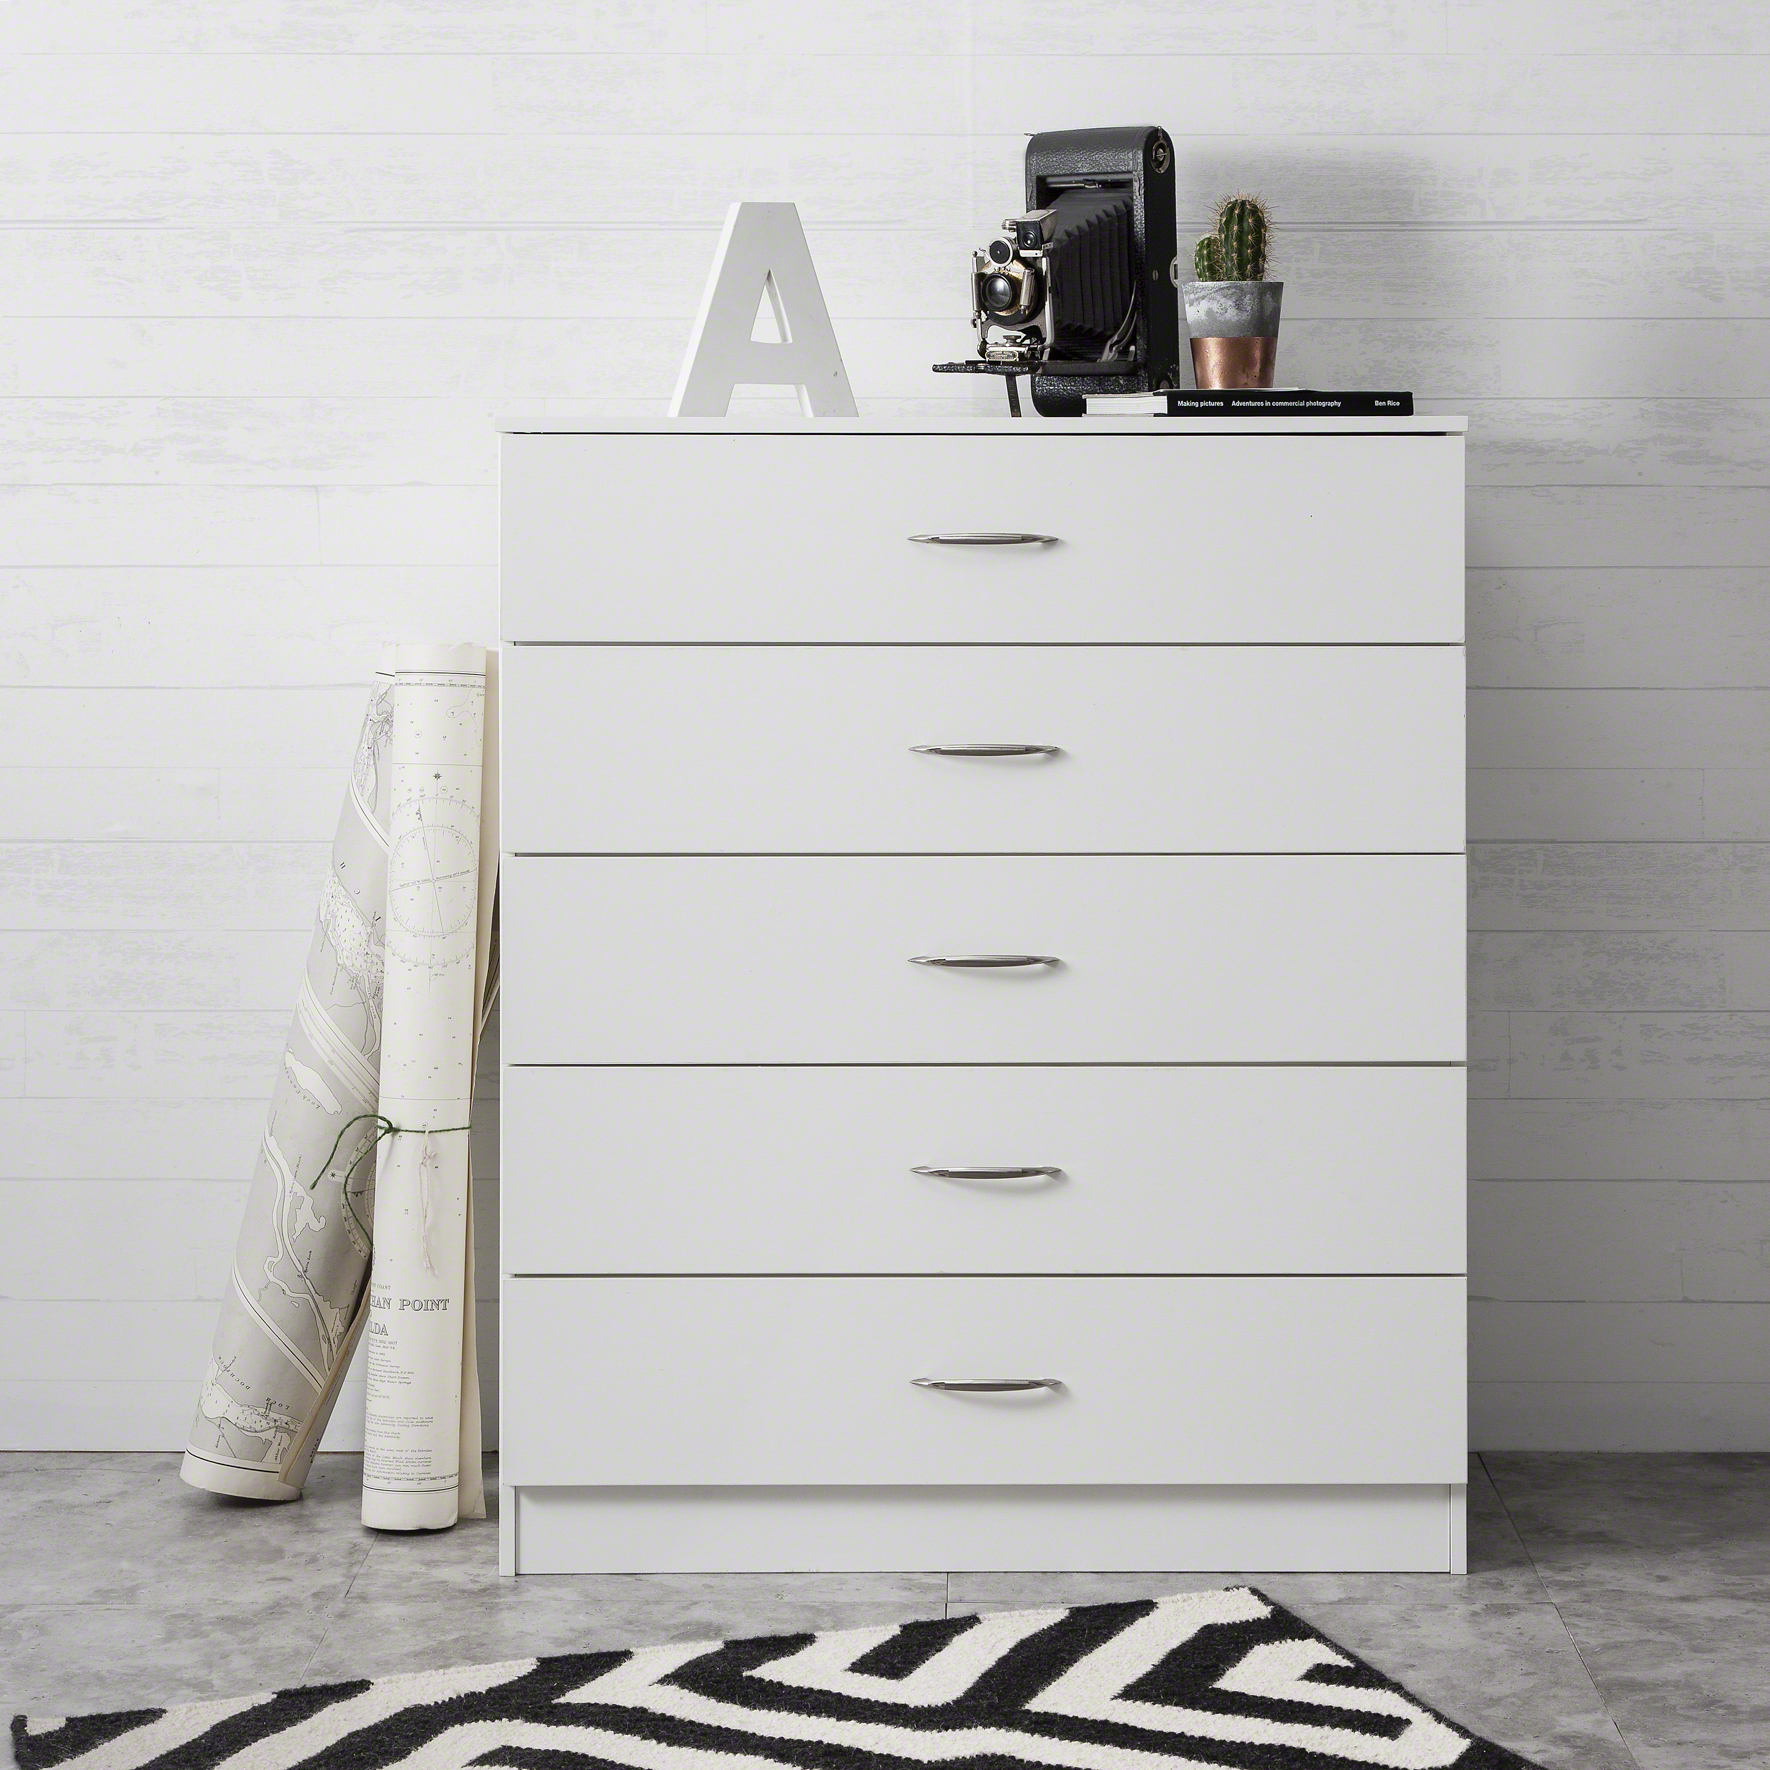 Laura James Bedroom Chest of Drawers Draws